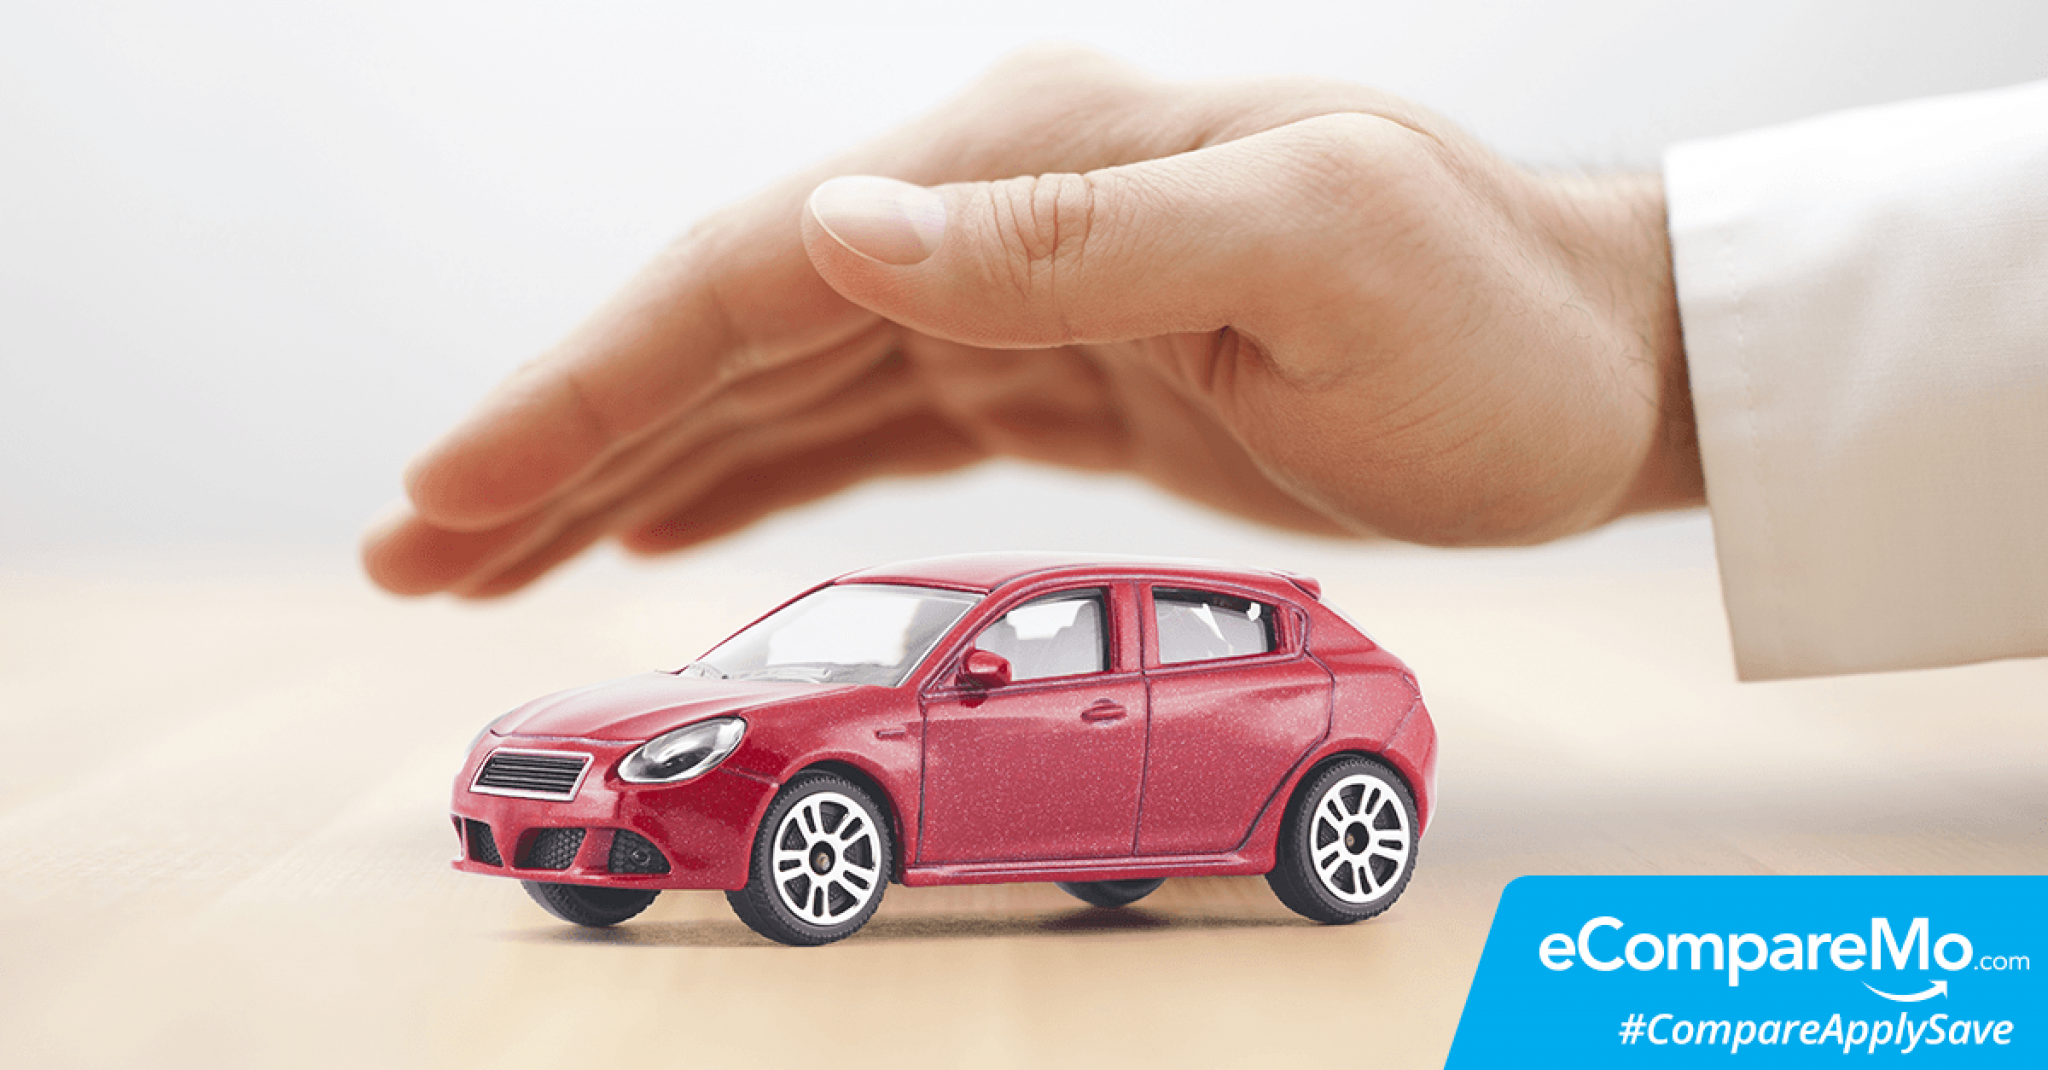 Best Car Loan Companies For No Credit